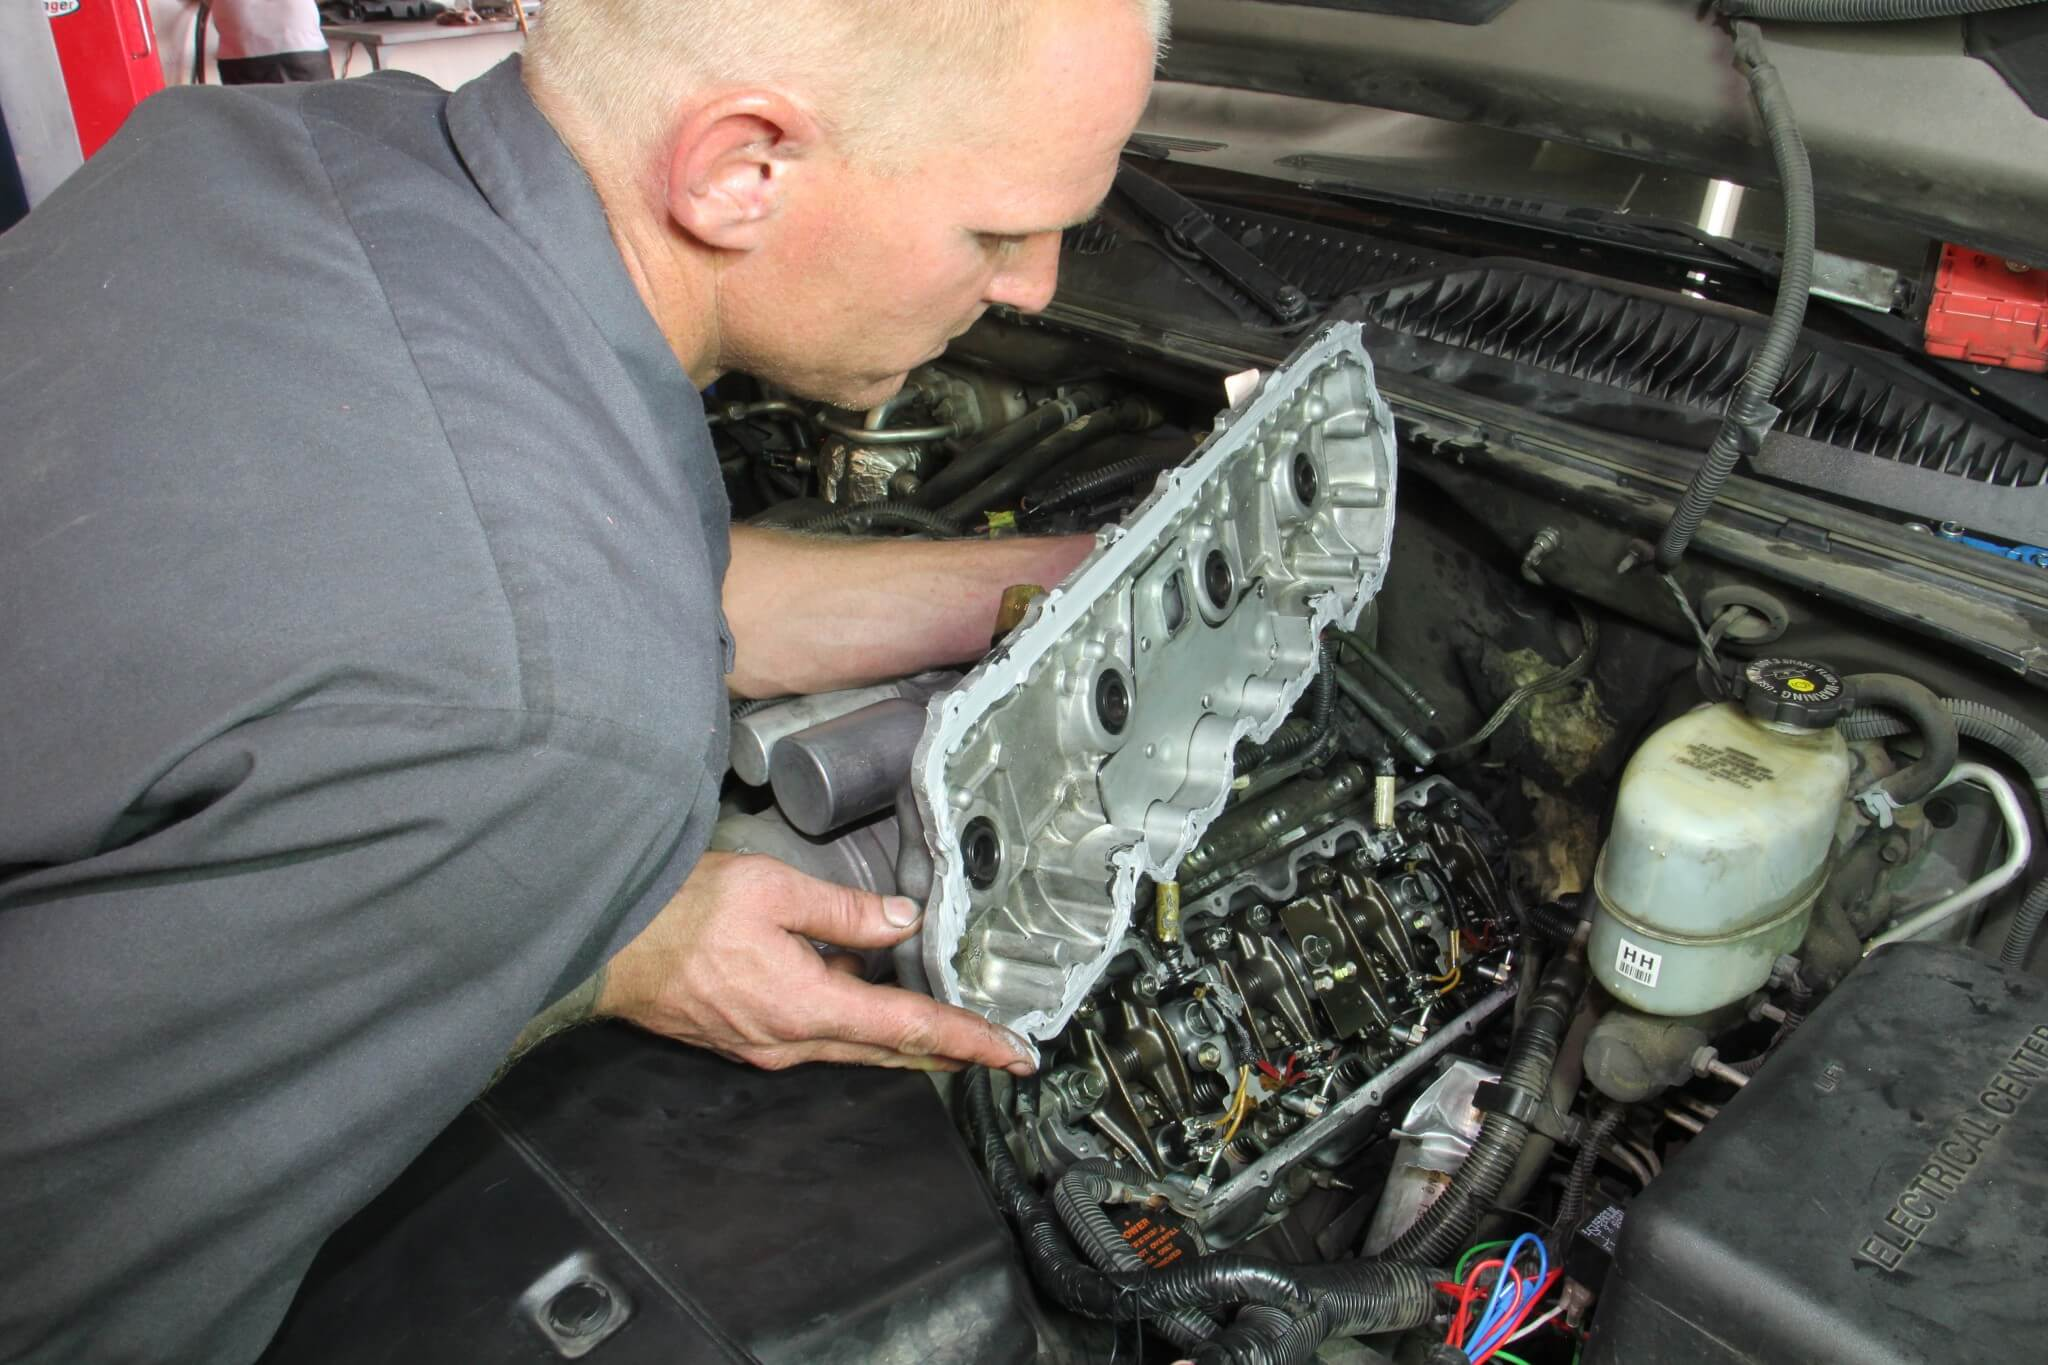 5. After removing the fuel lines from the injectors and fuel rail, a 10mm socket was used to remove the top valve cover bolts from the bottom valve cover base.